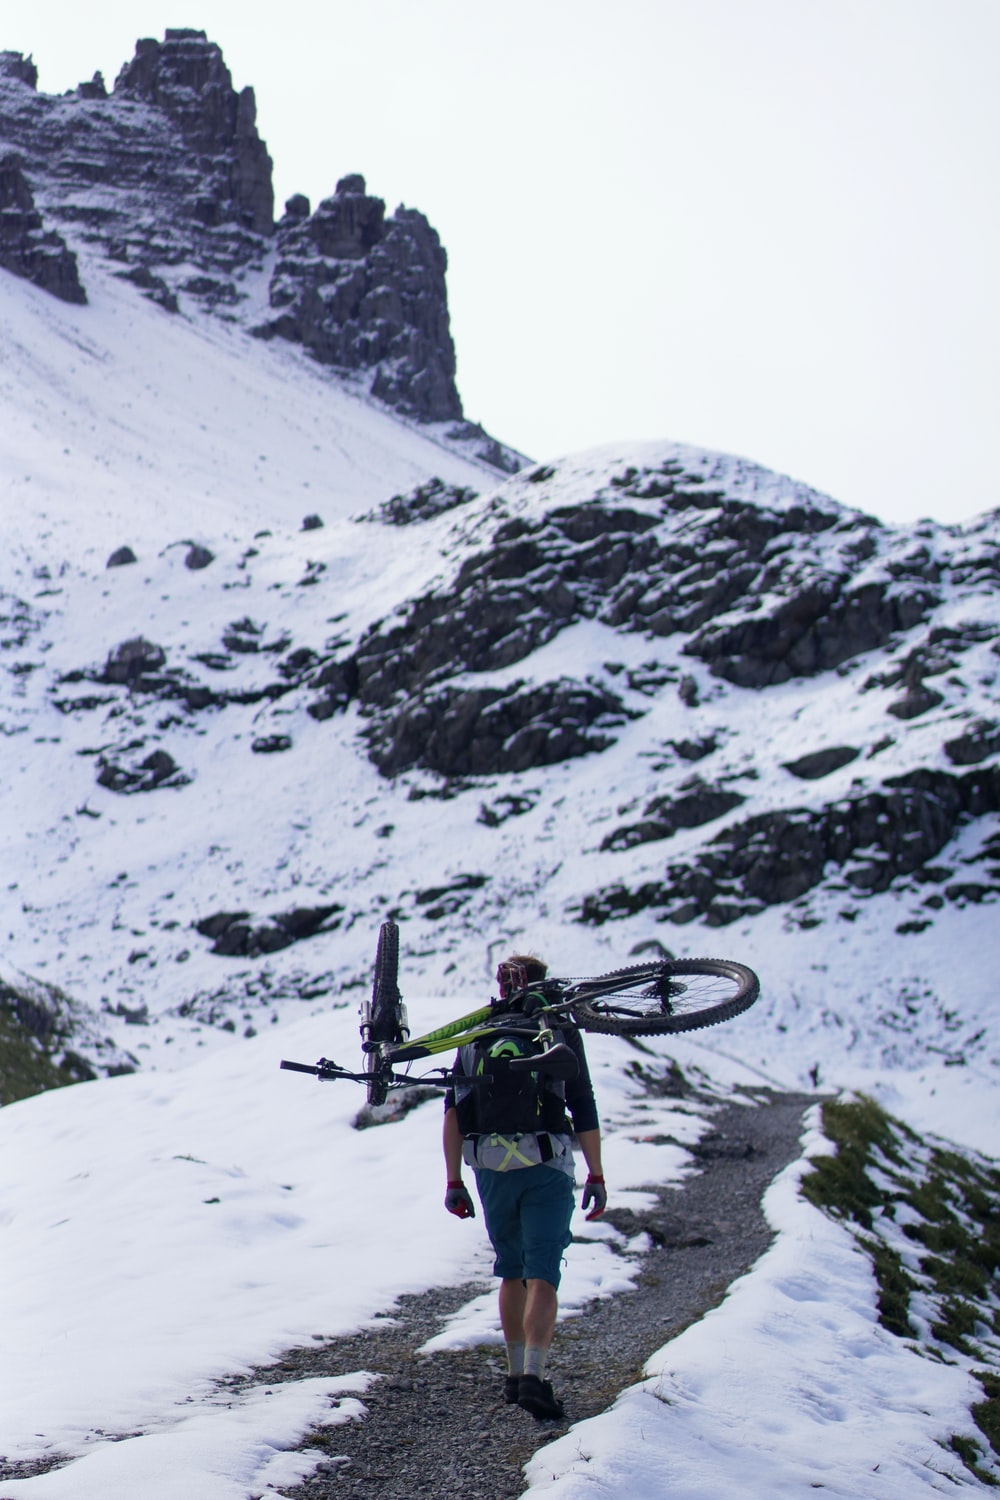 man carrying bicycle walking on mountain surrounded by snow